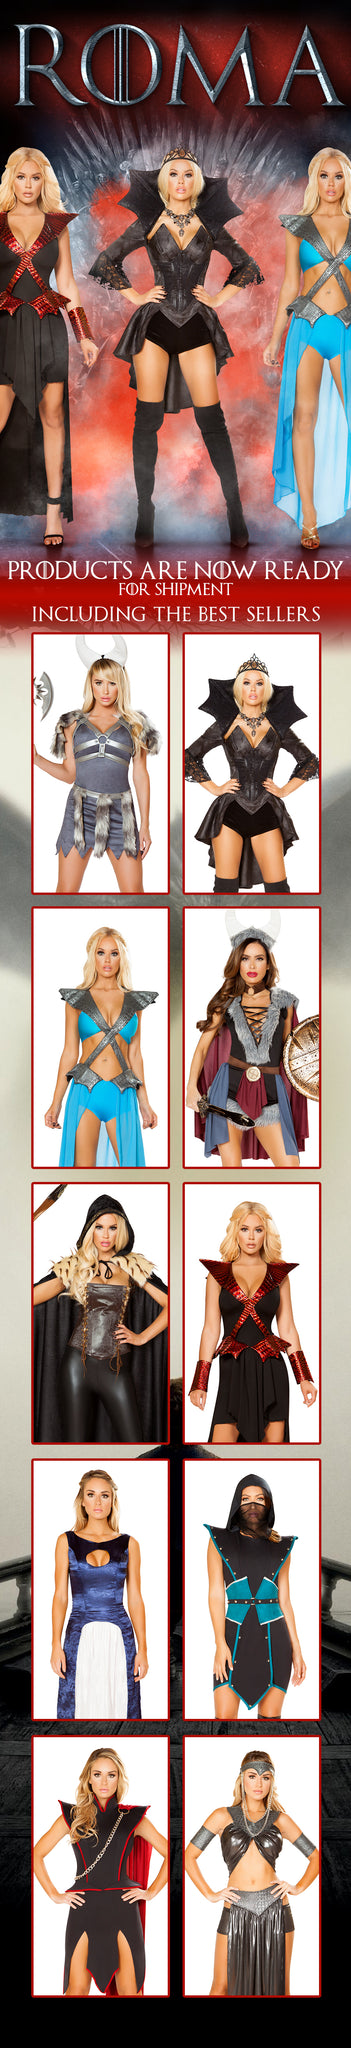 Roma Costume Collection Game of Thrones Email Blast